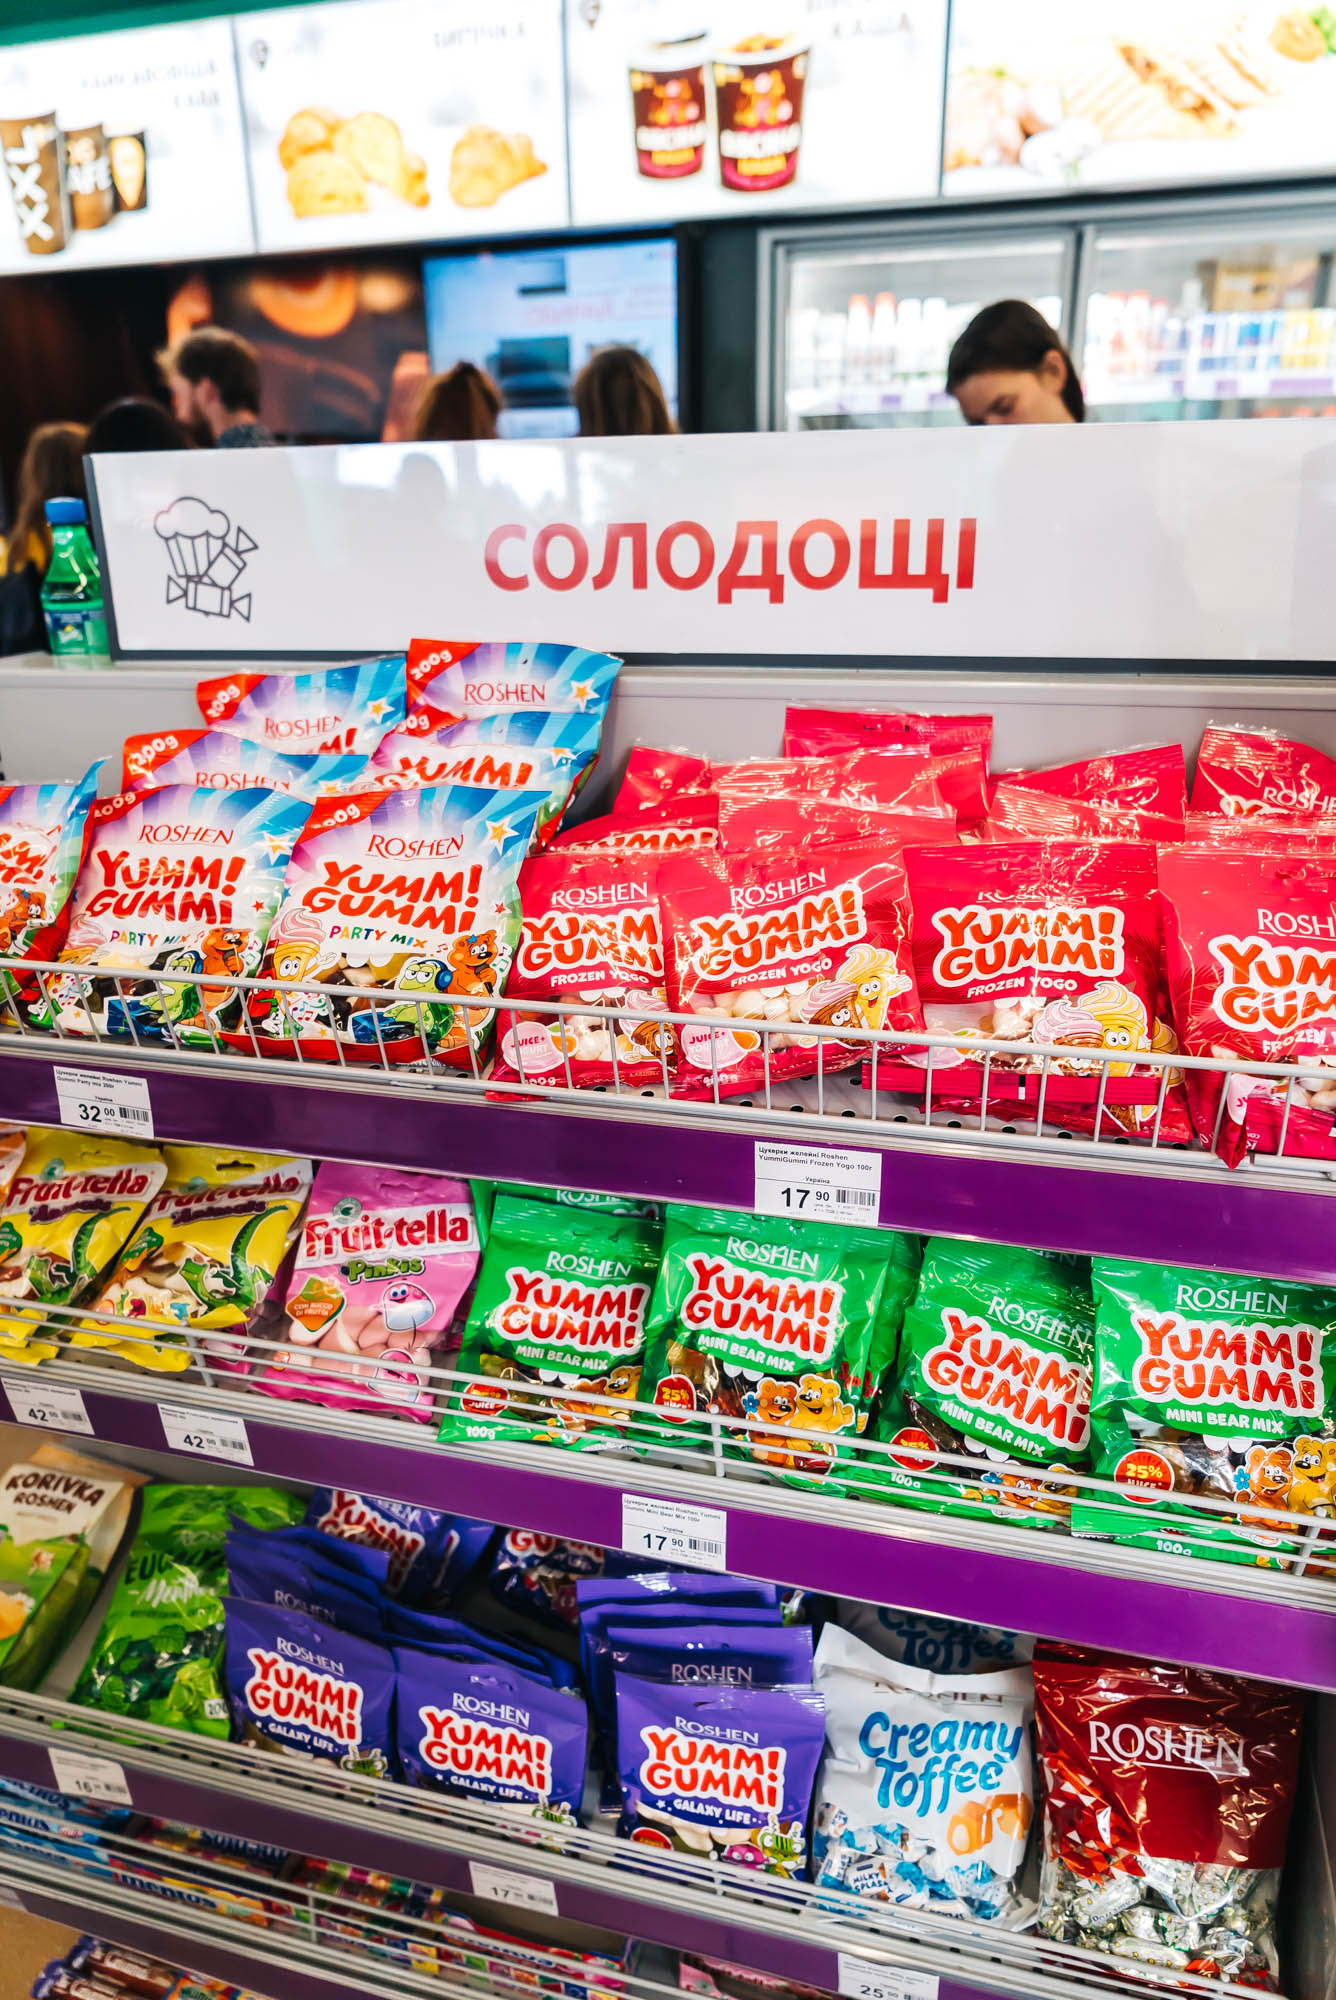 Grab some snacks at the Ukrainian Convenient store